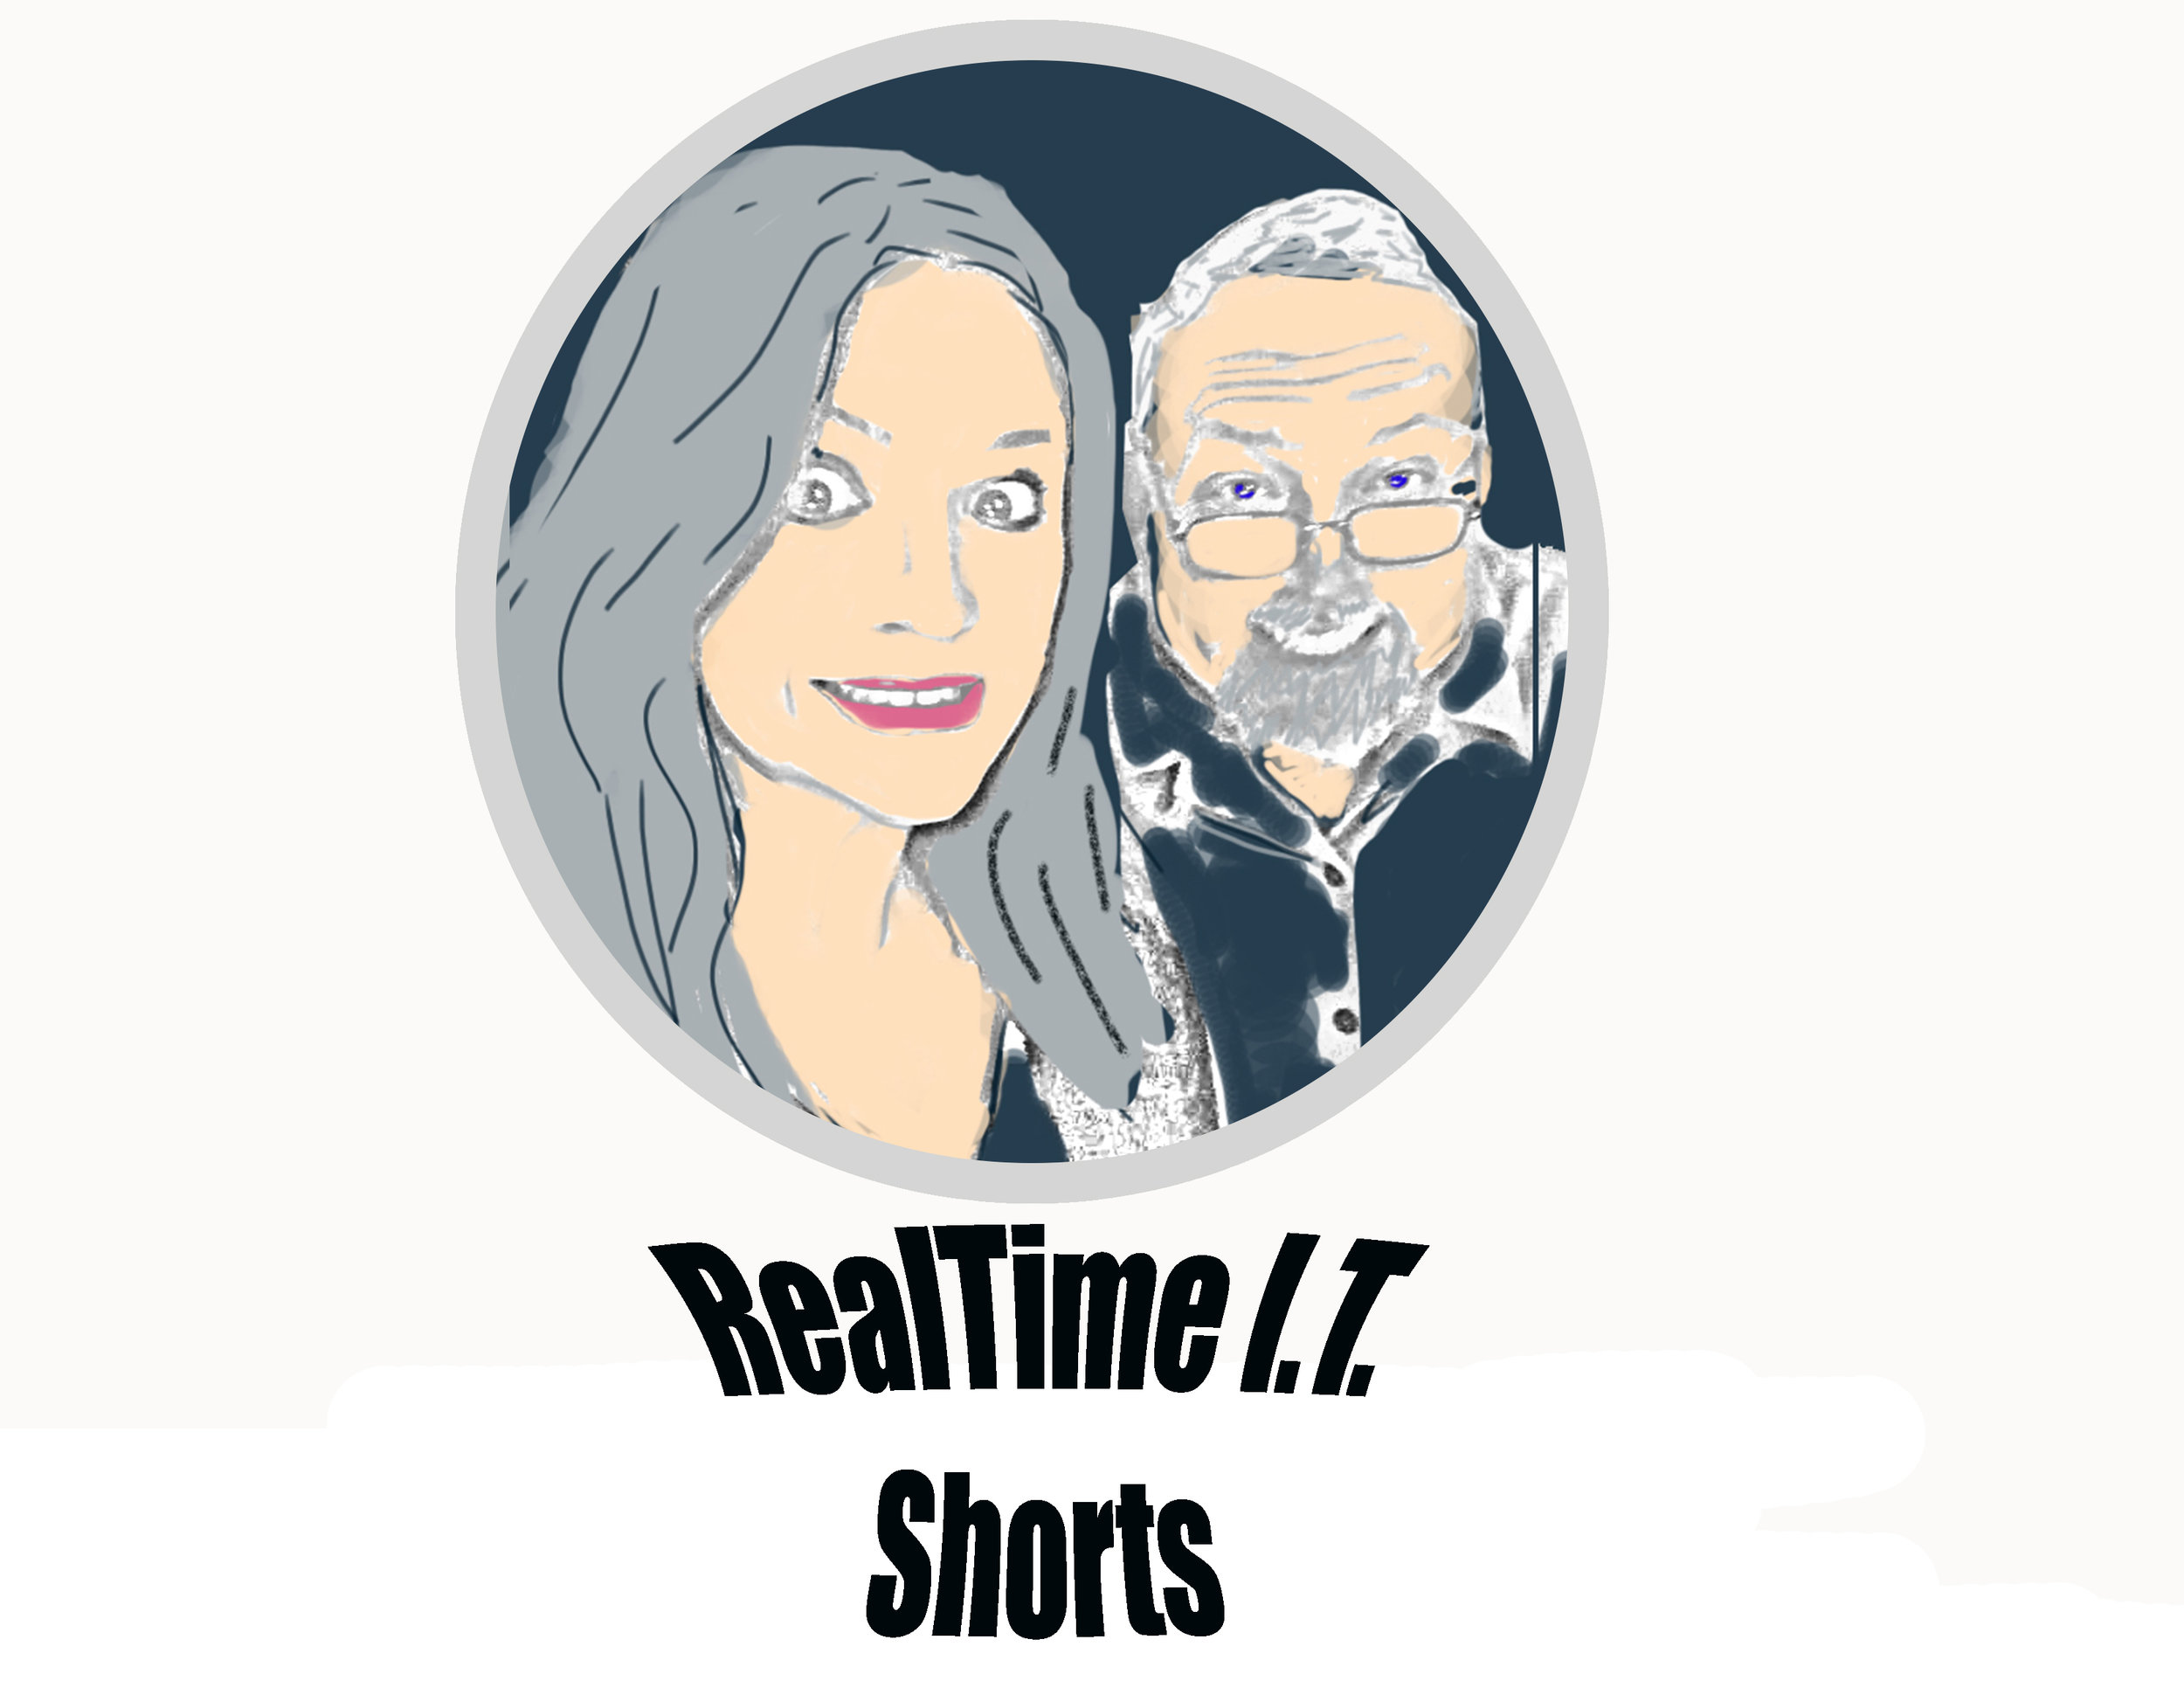 realtime_it_shorts_logo.jpg